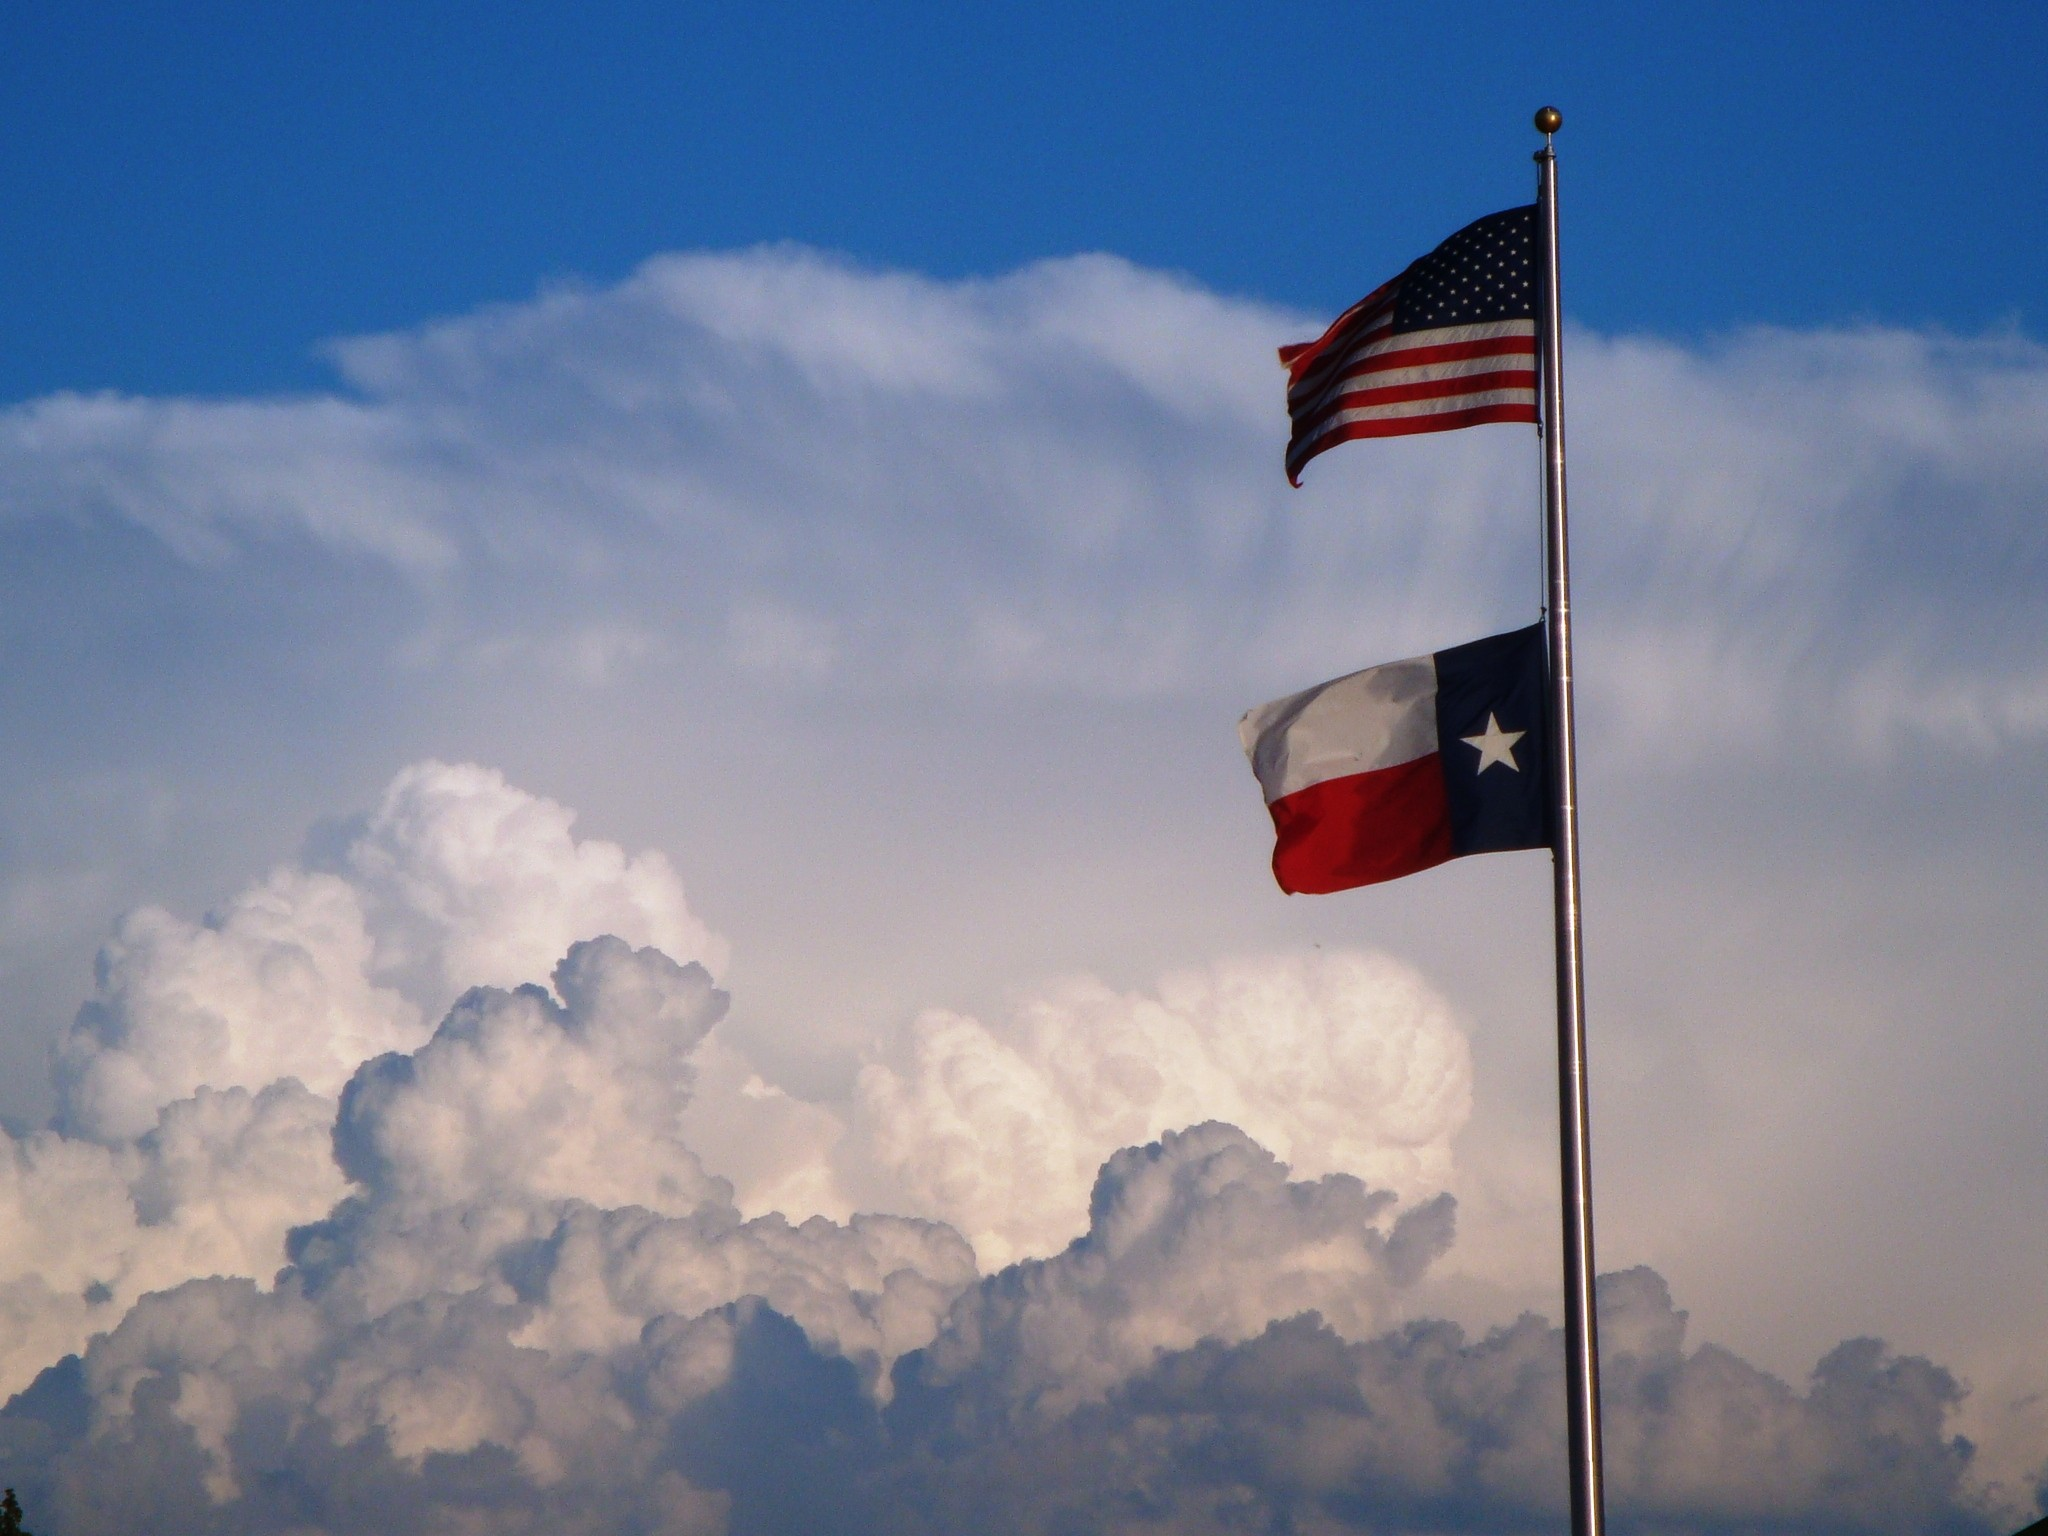 Texas flag wallpaper download free cool hd wallpapers for desktop mobile laptop in any - Texas flag wallpaper ...